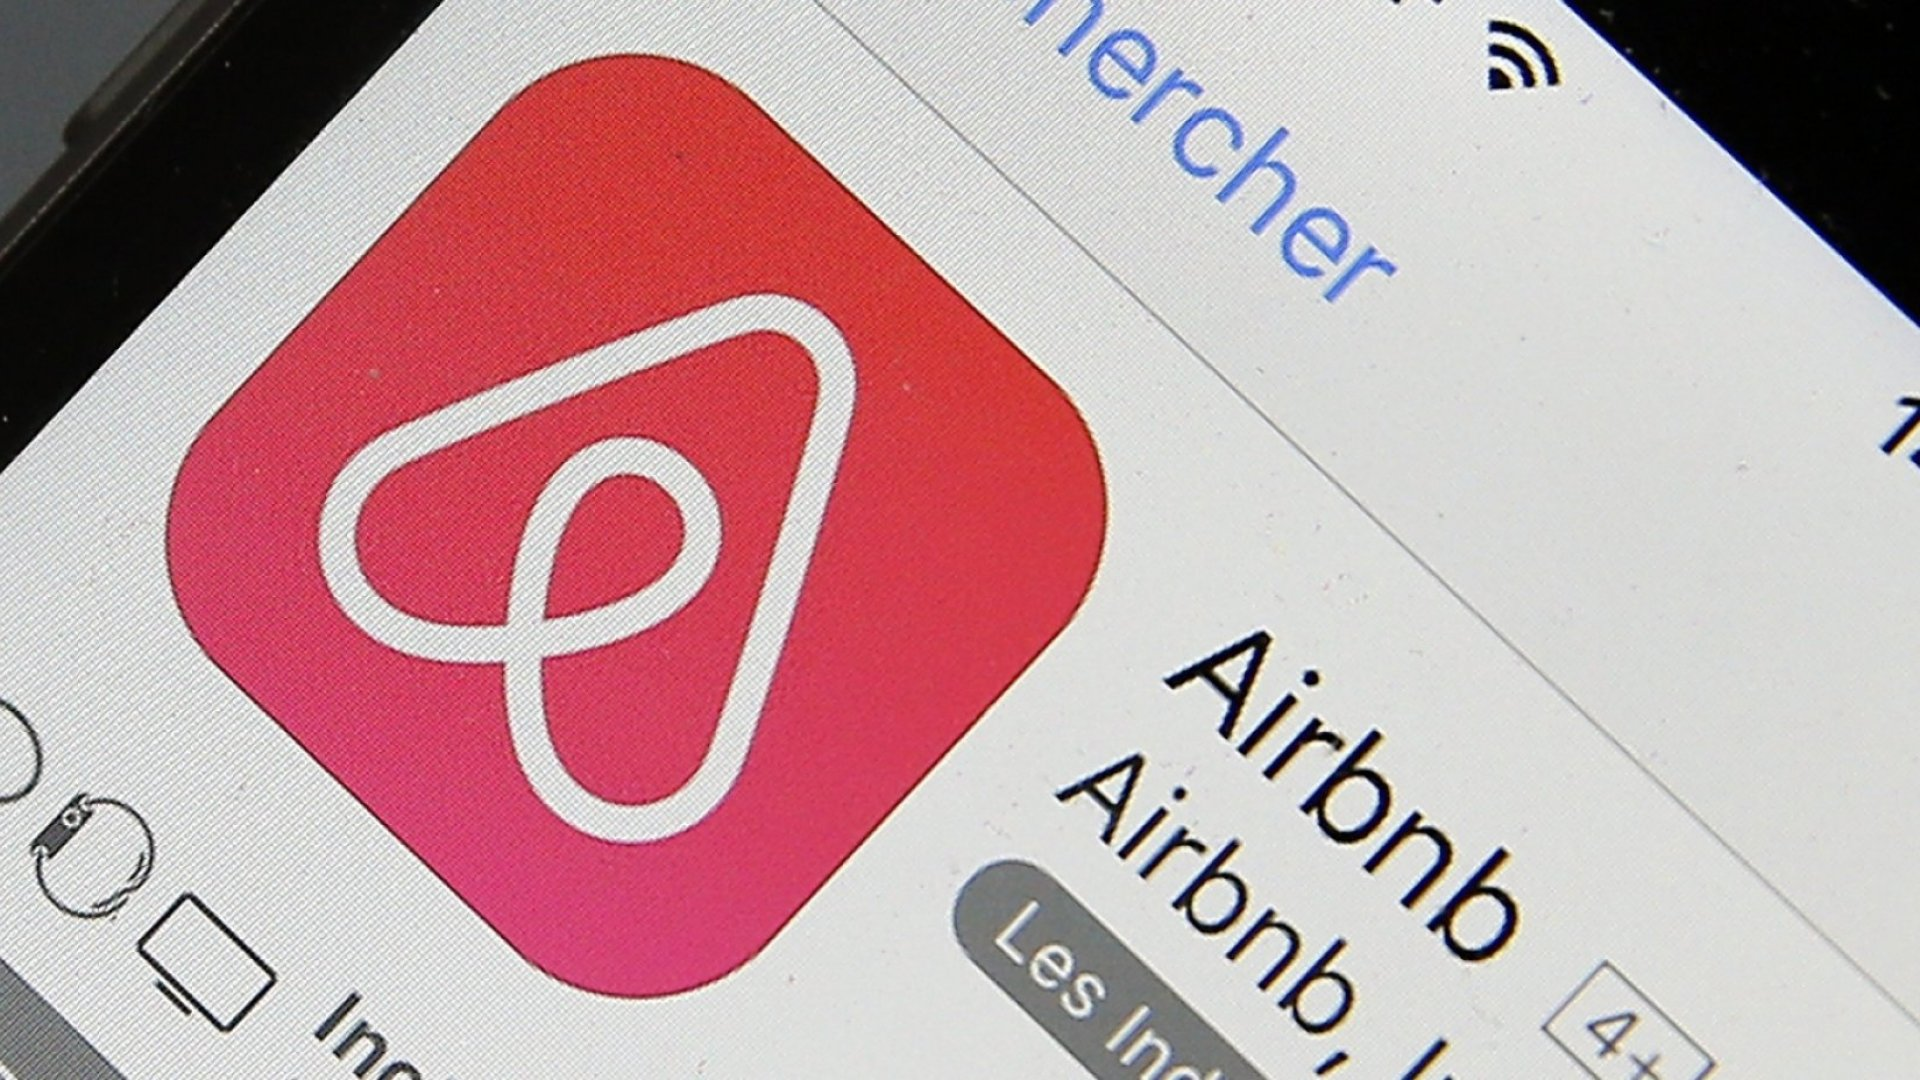 Brooklyn Airbnb Host Is Slapped With $32,000 Fine by New York City